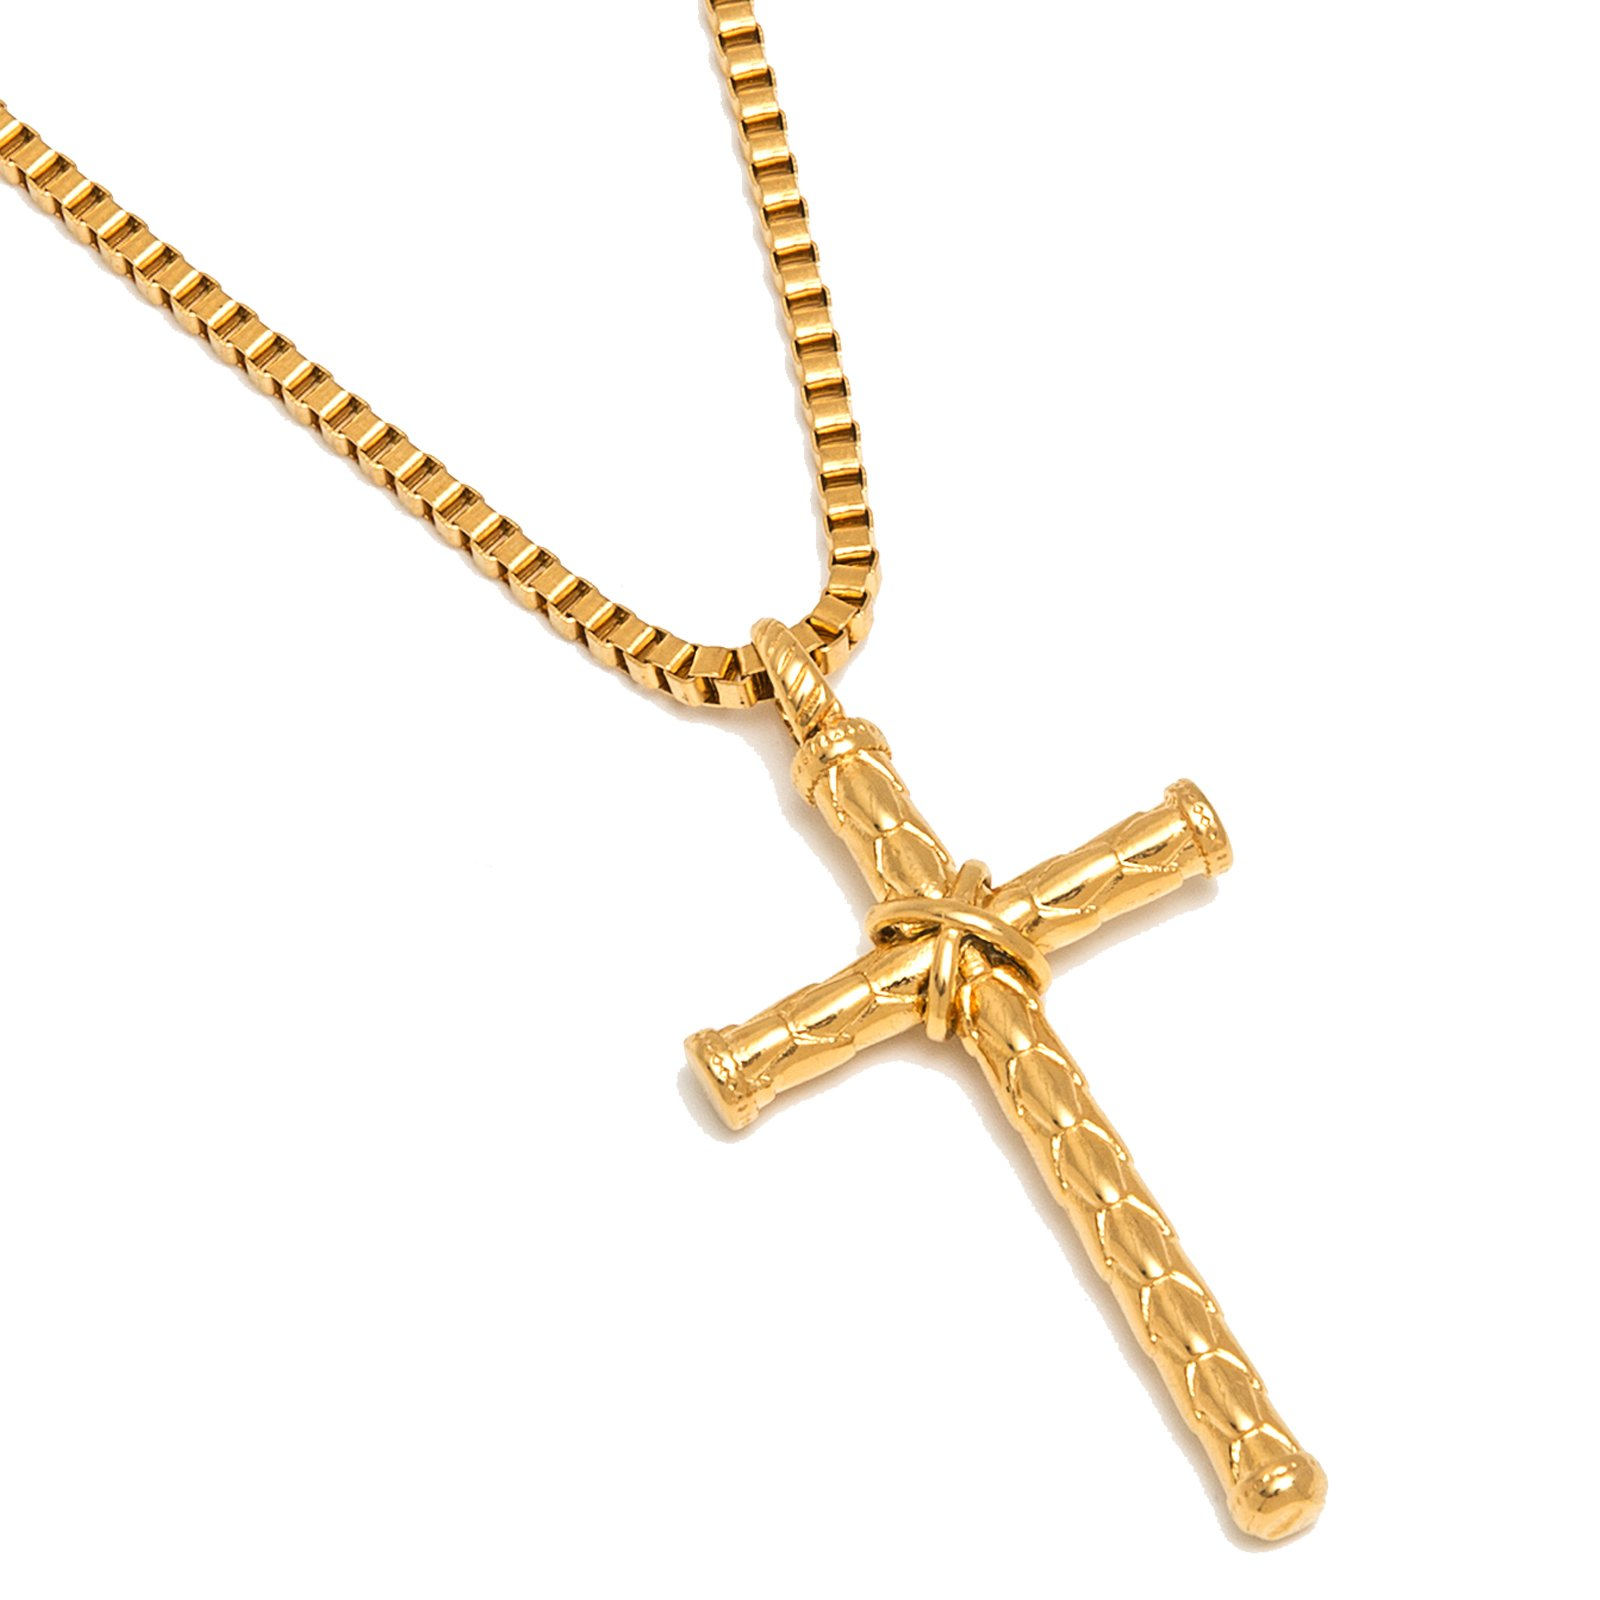 Sunflower Jewellery Huge Big Cross Necklace Stainless Steel Pendant Necklace For Men, Boy(18K Gold; 24 inches chain)